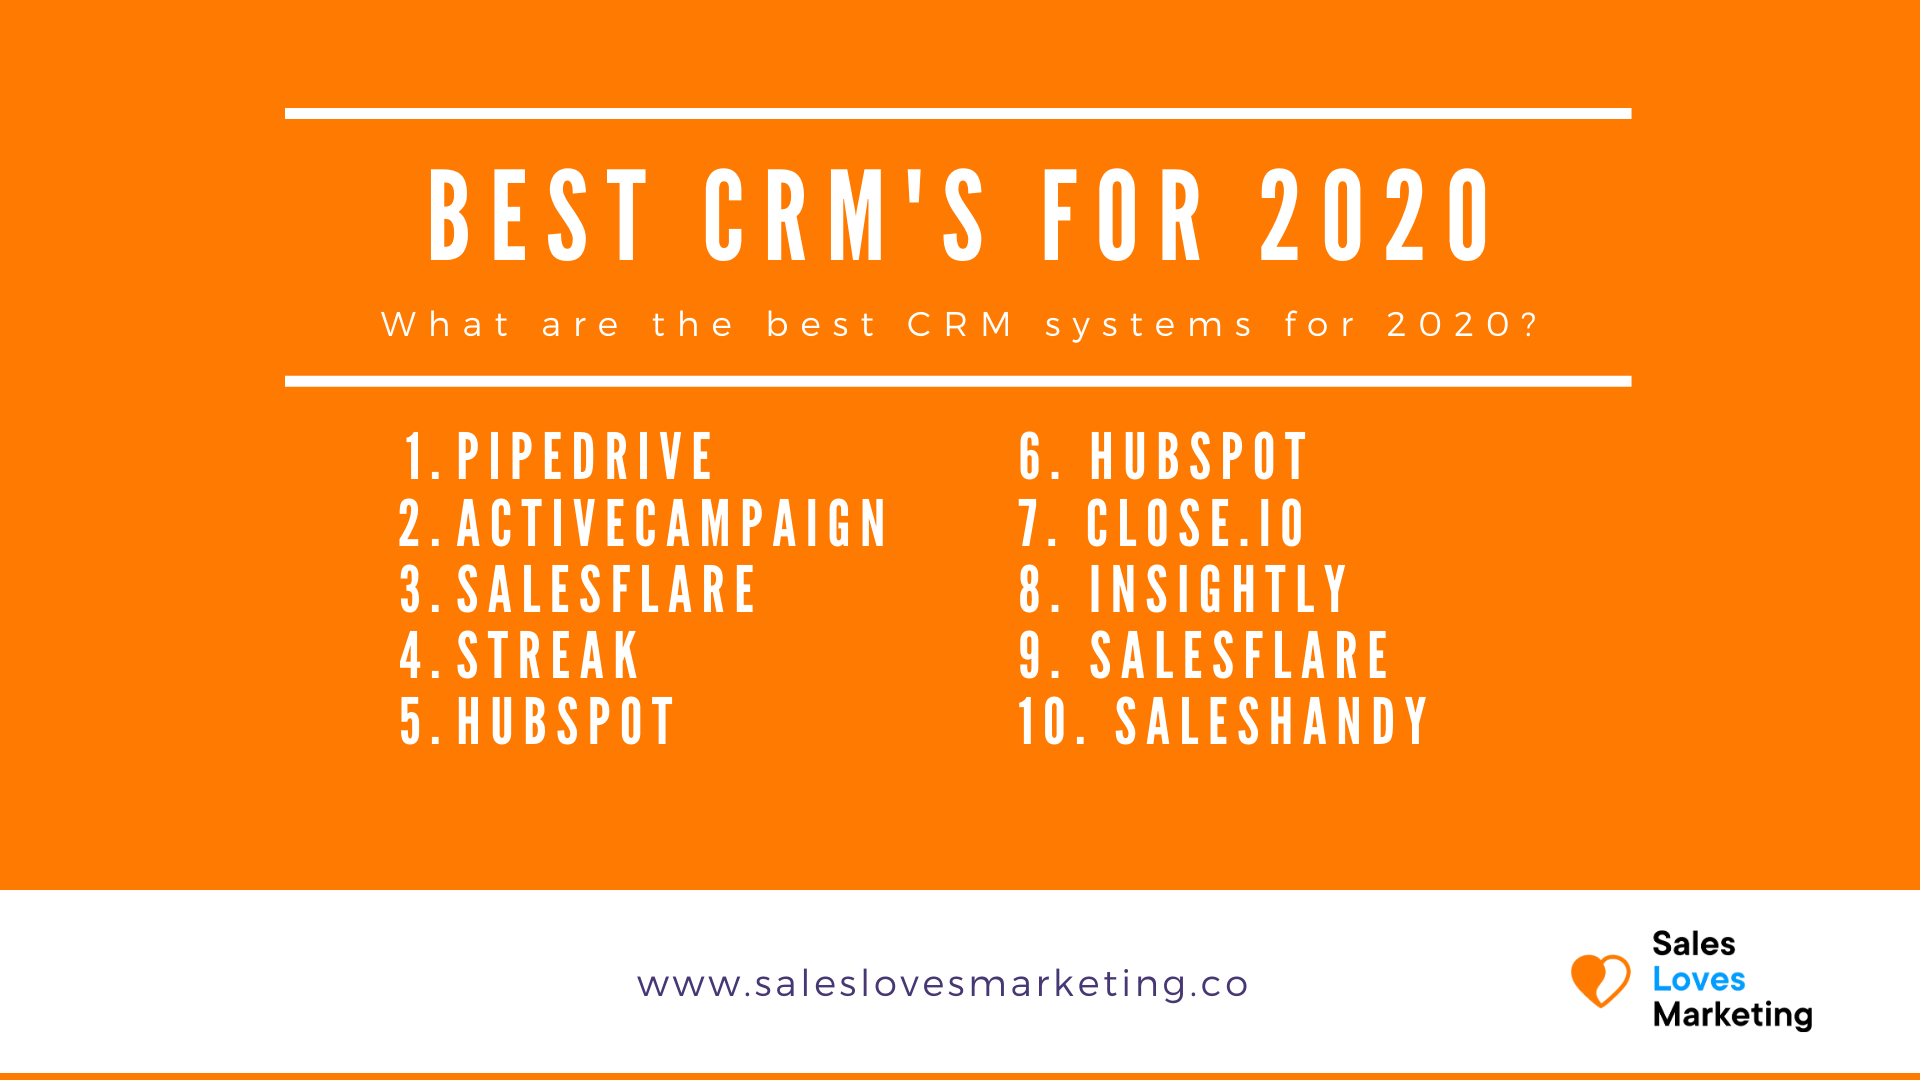 A list of the best CRM systems for Small And Medium businesses